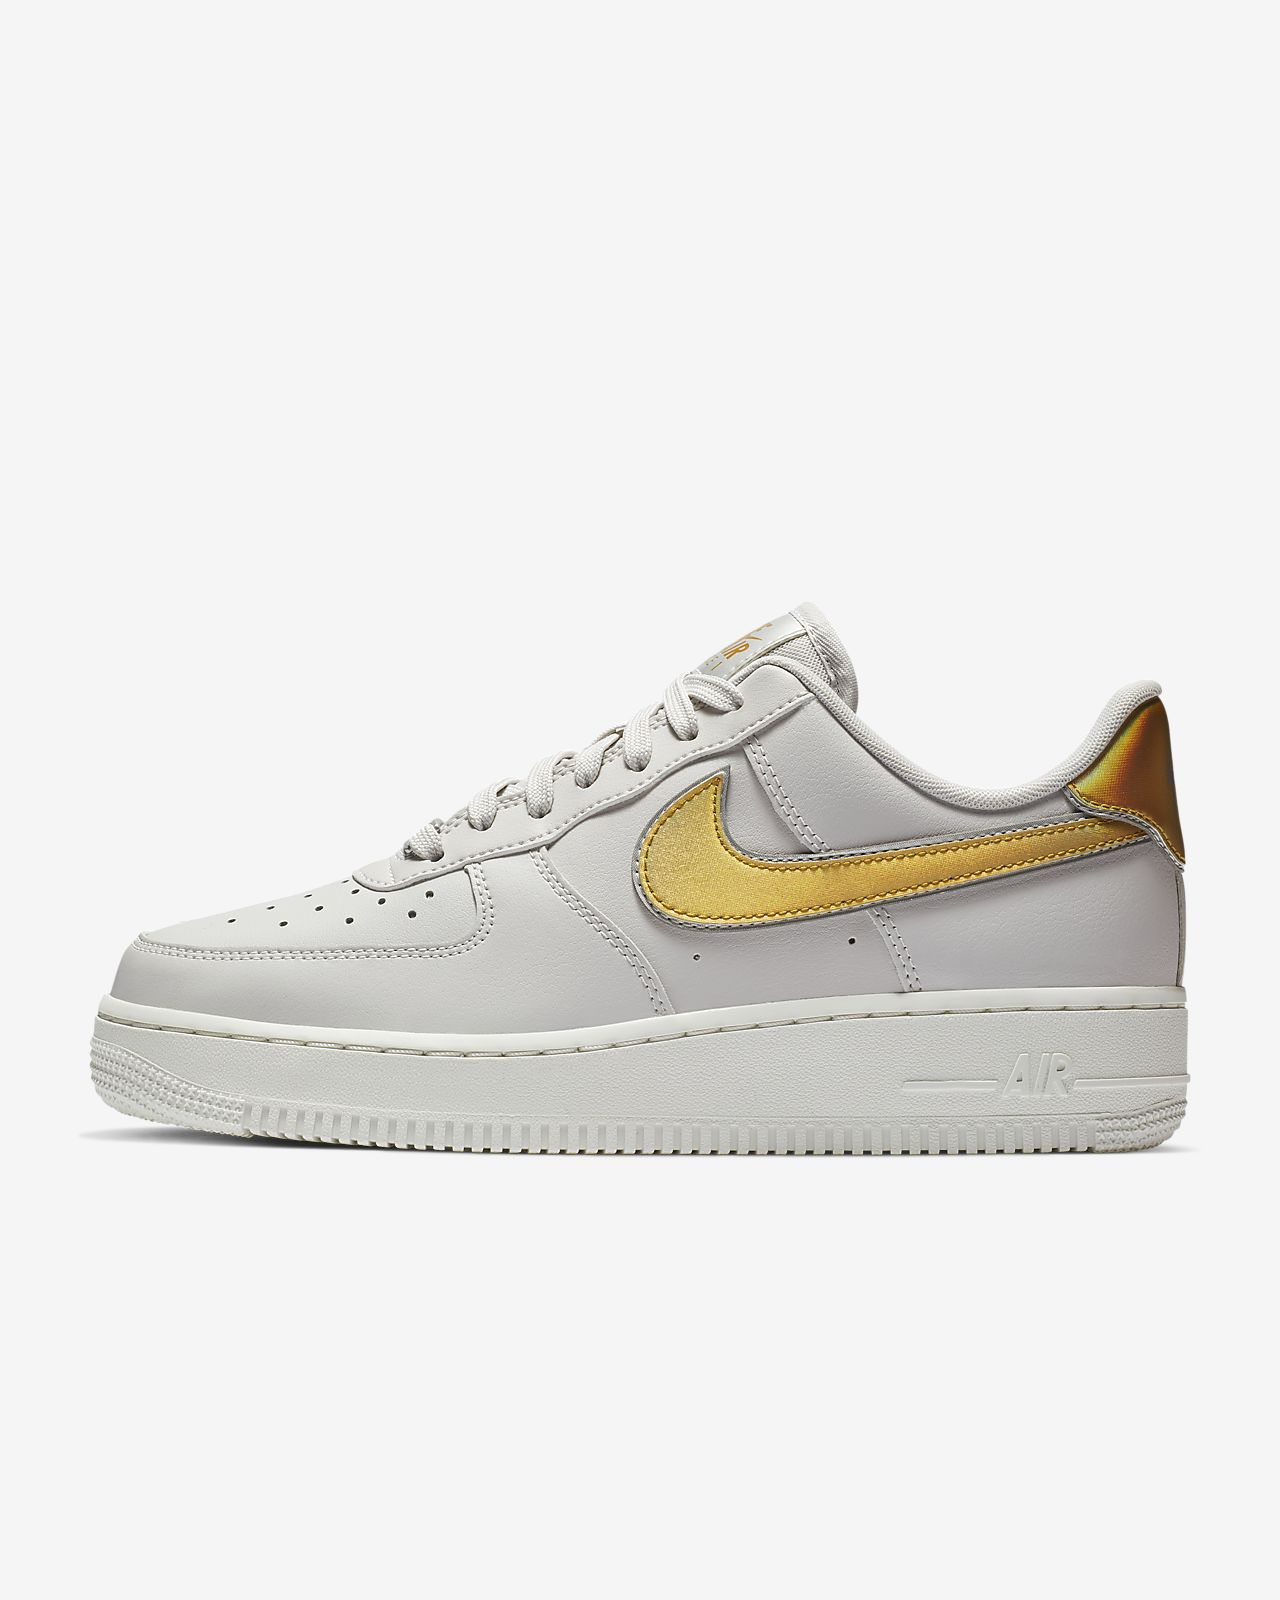 Sko Nike Air Force 1 '07 Metallic för kvinnor